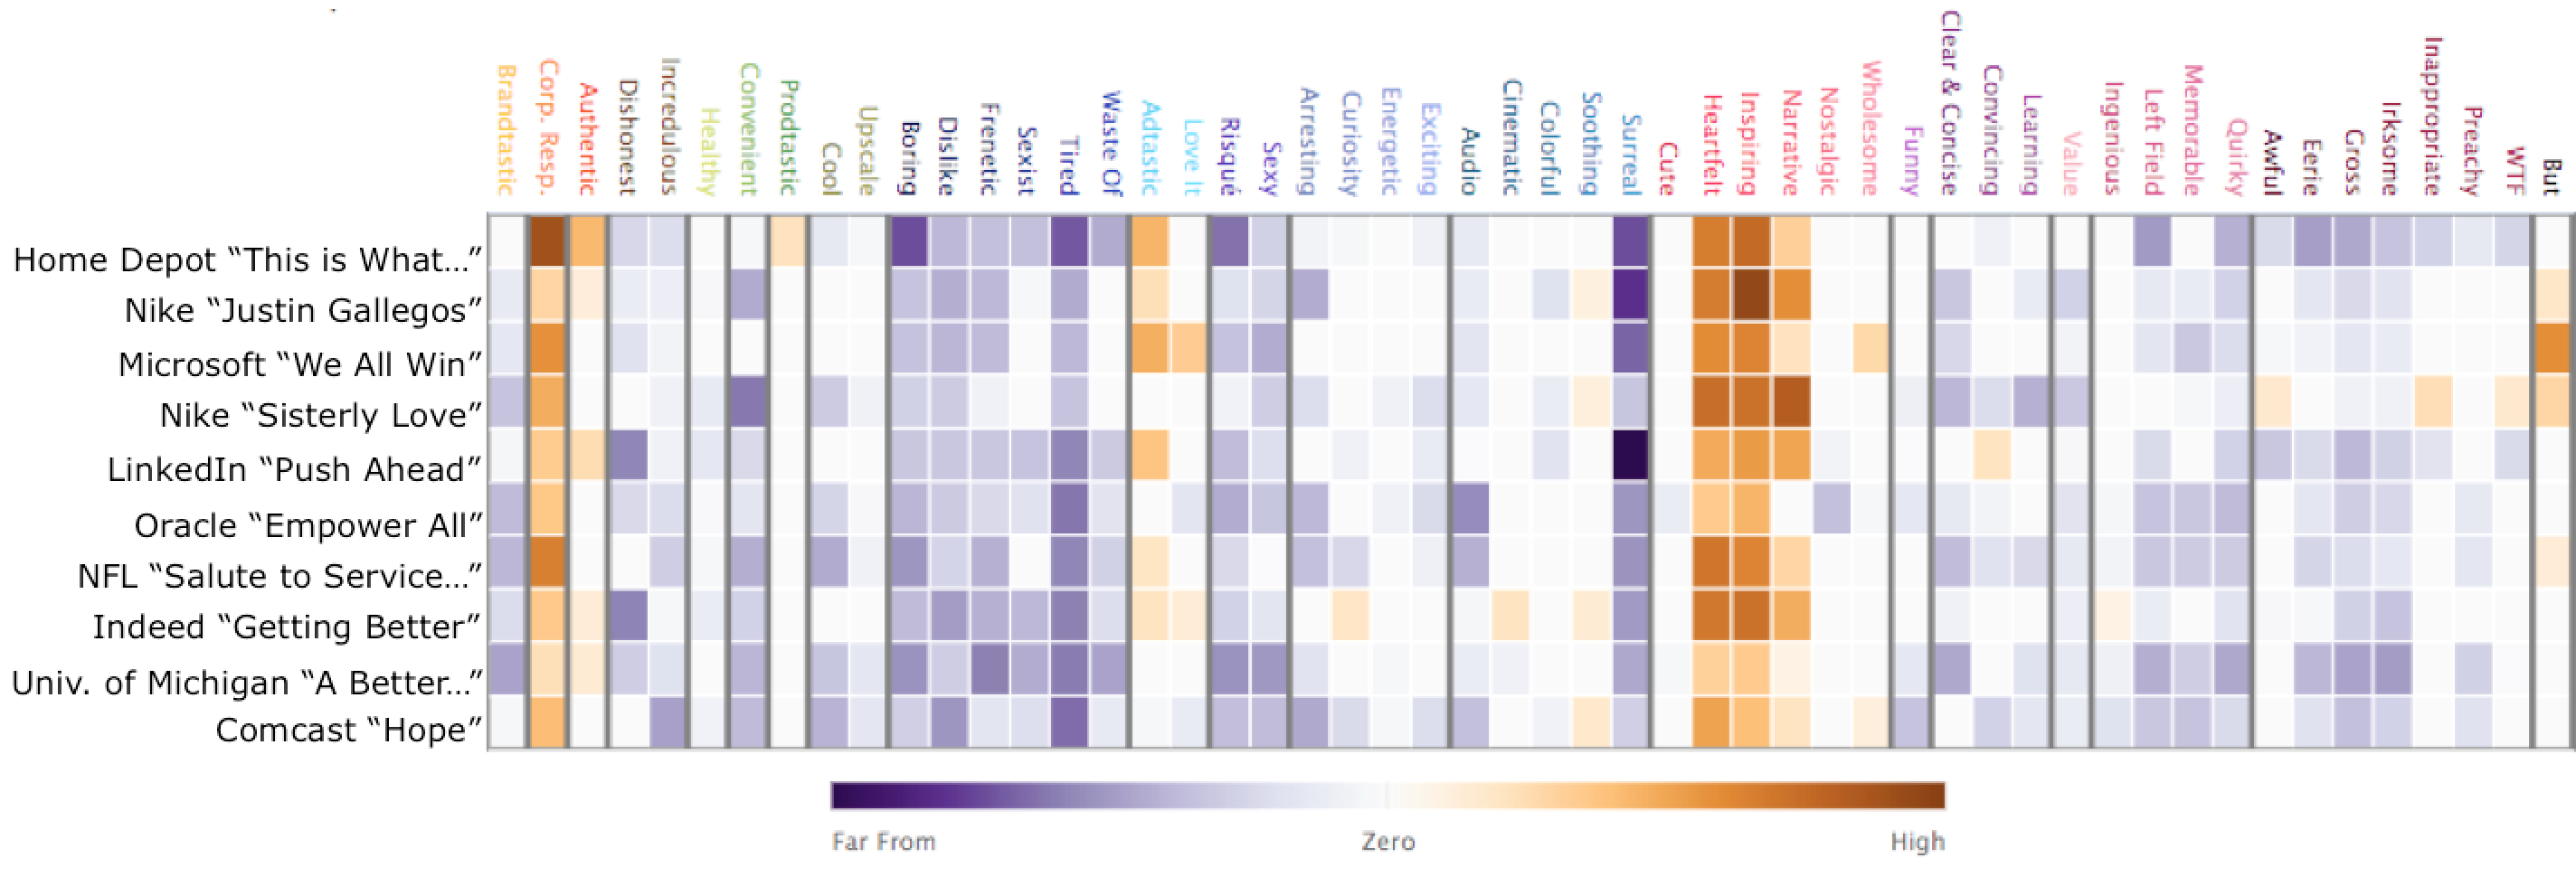 Ace Metrix Emo Heat Map: Most Empowering Adveritsing that portrays disabilities